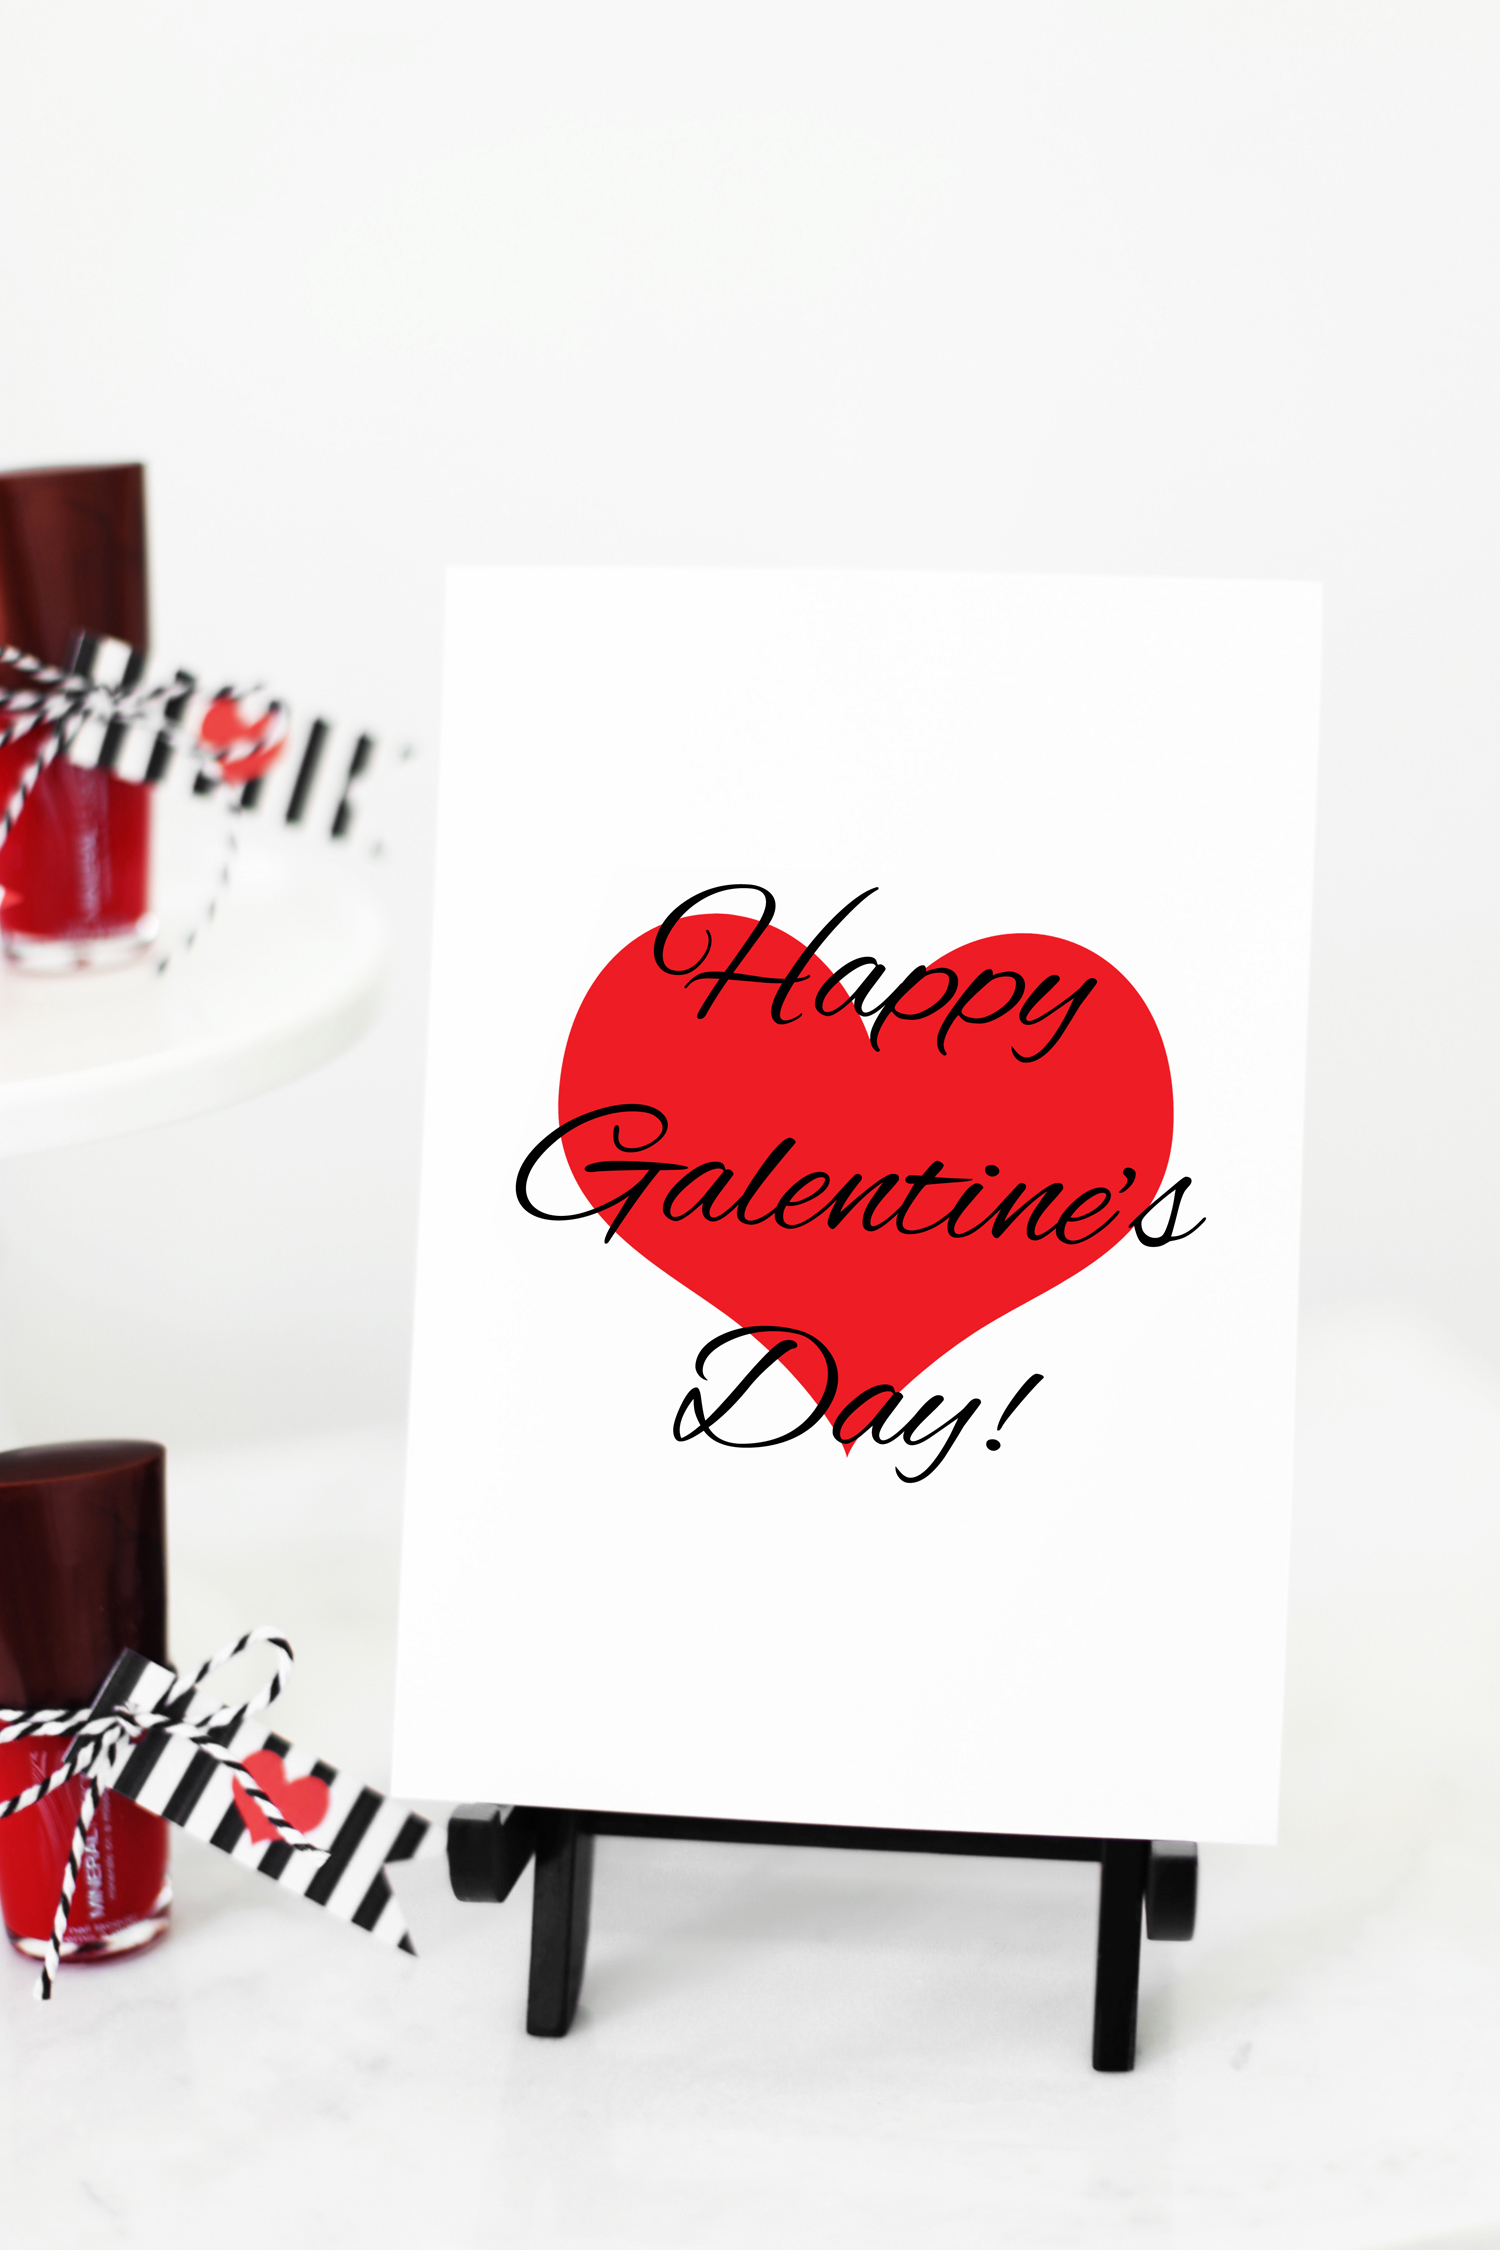 Happy Galentine's Day printable sign